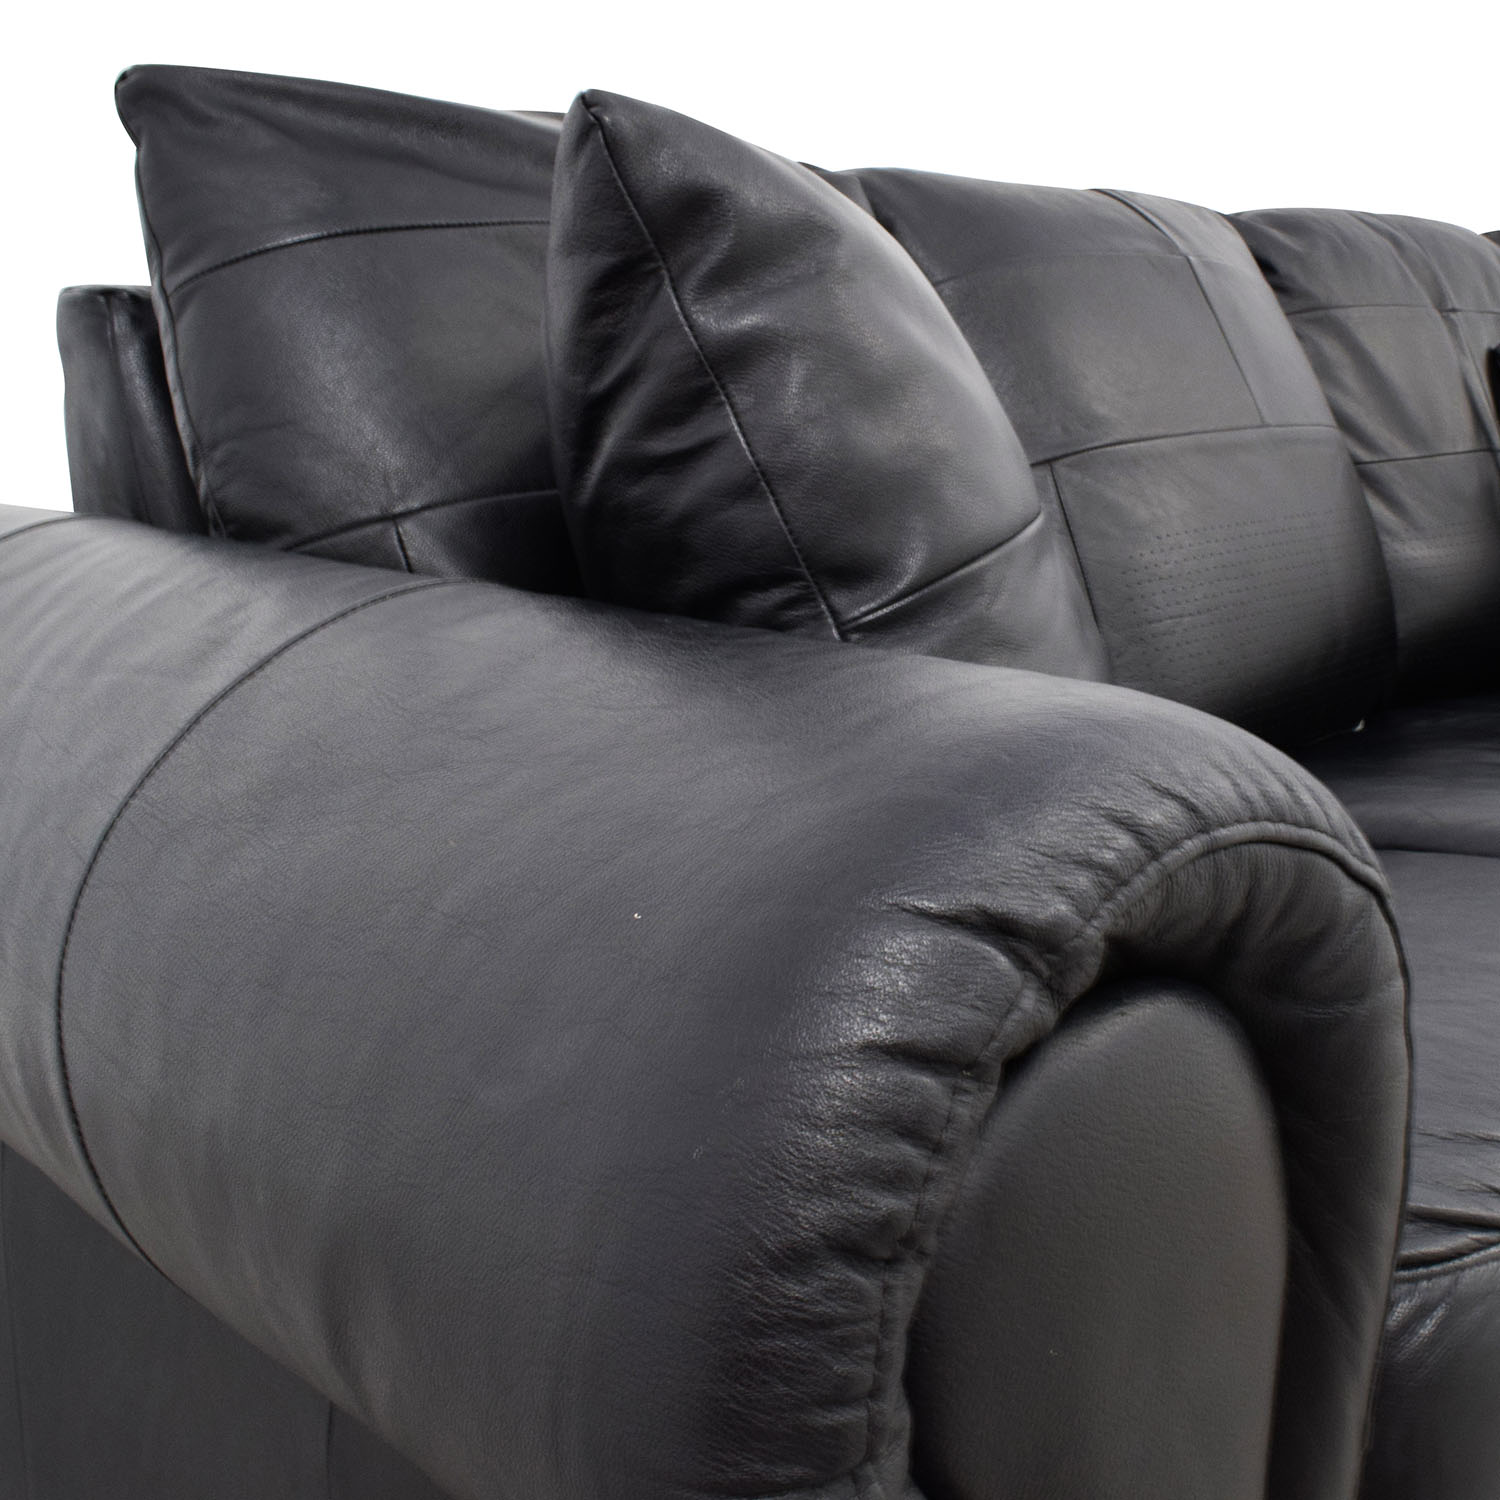 shop ABC Carpet & Home Black Leather Couch ABC Carpet and Home Classic Sofas